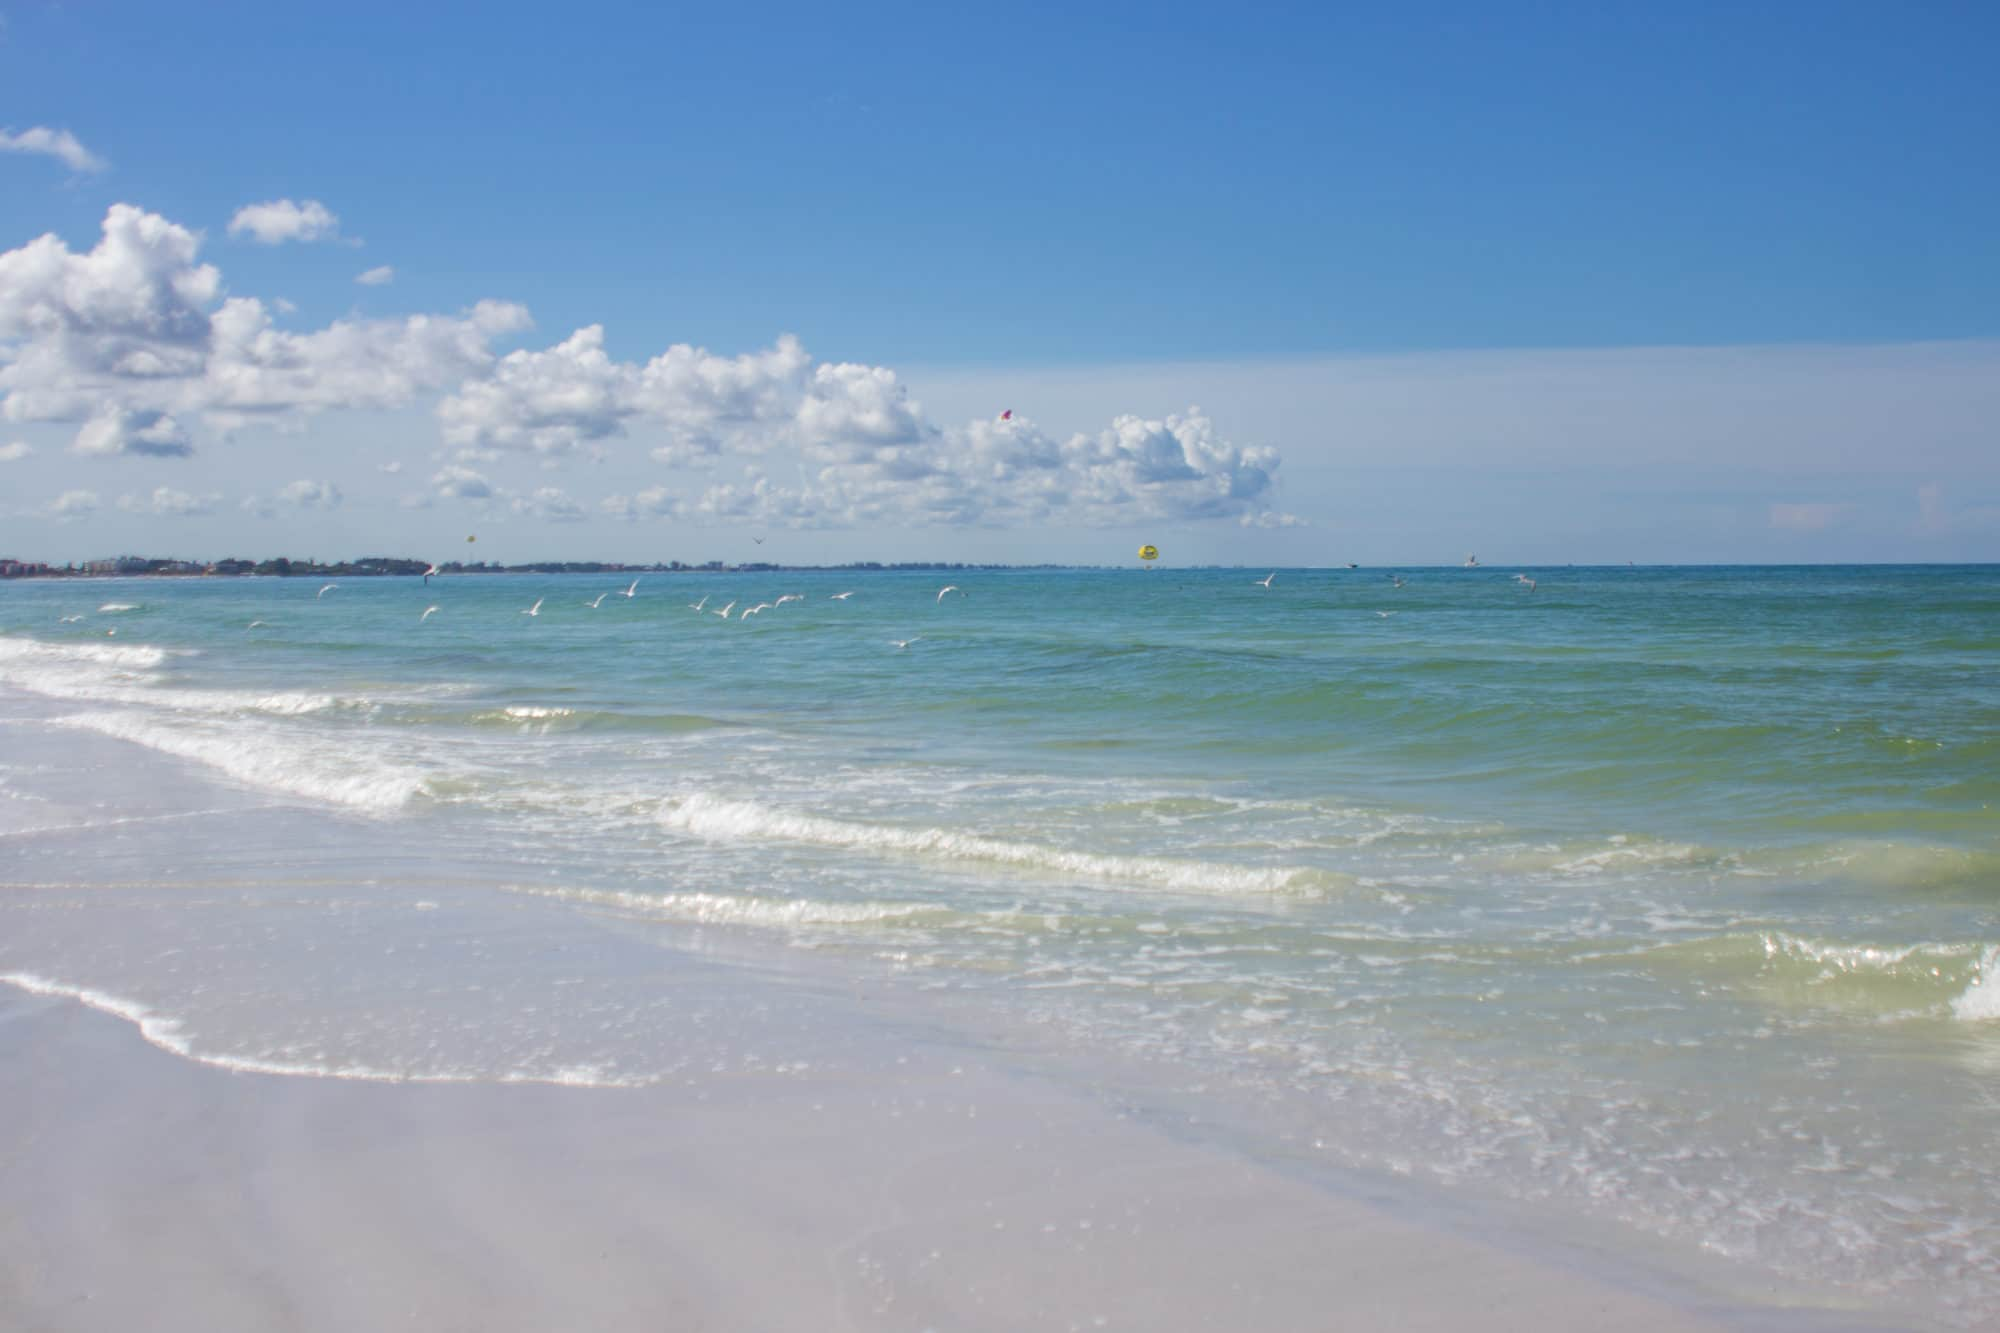 siesta key beach by siesta key photographers